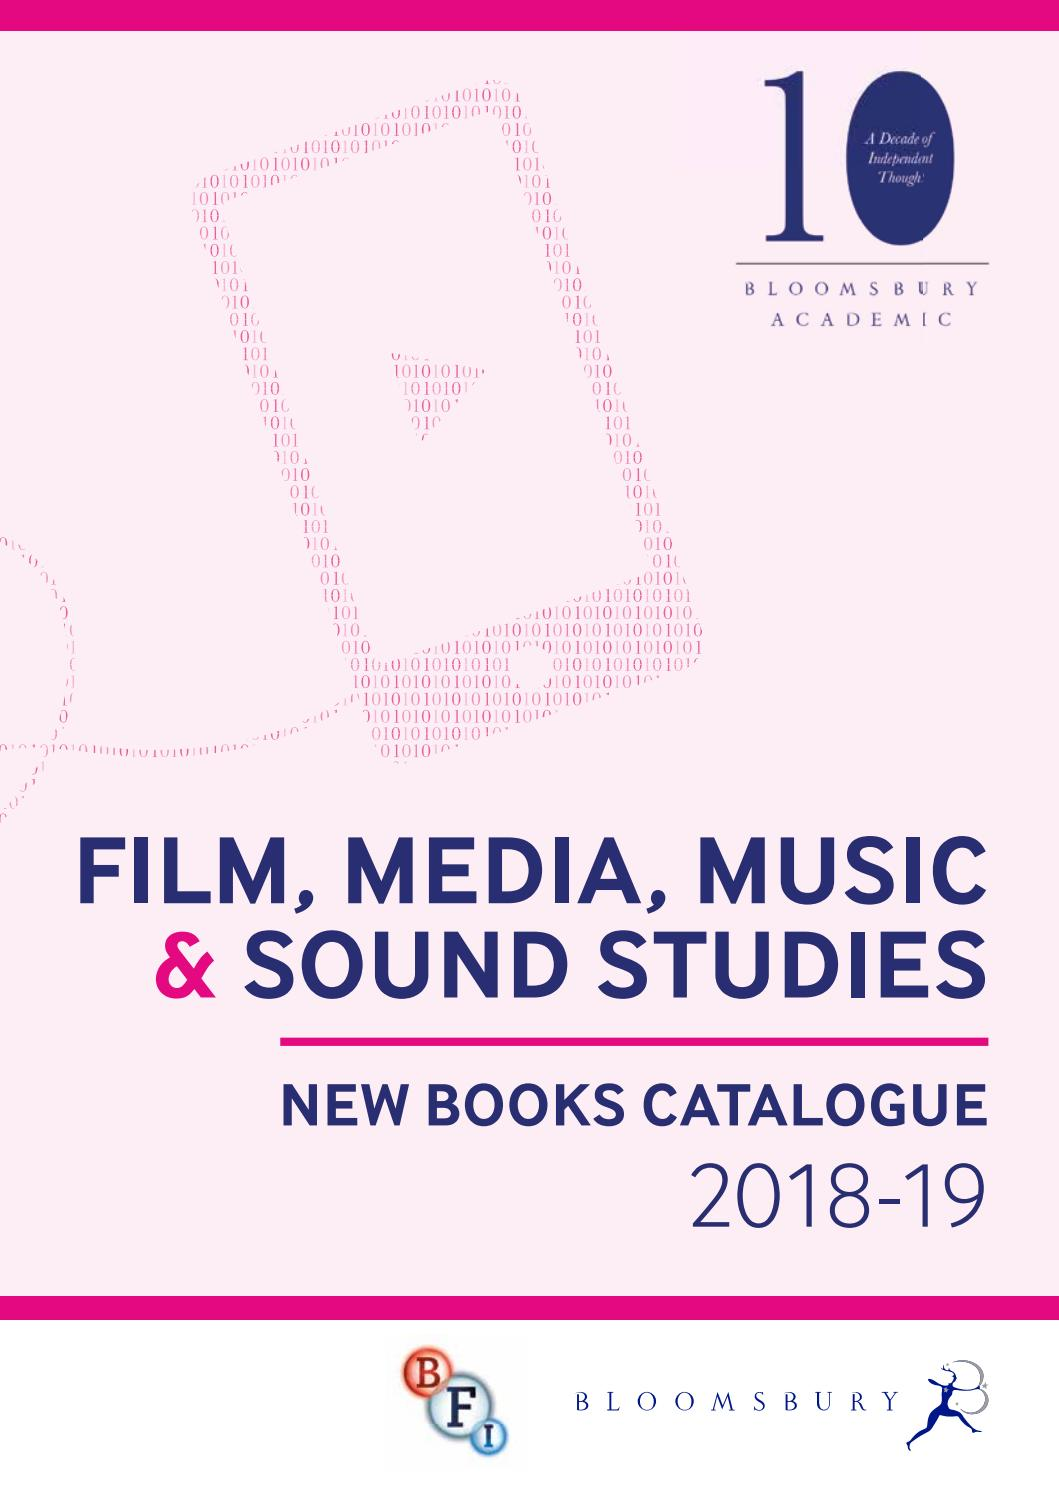 Film, Media, Music & Sound Studies Catalogue 2018-19 by